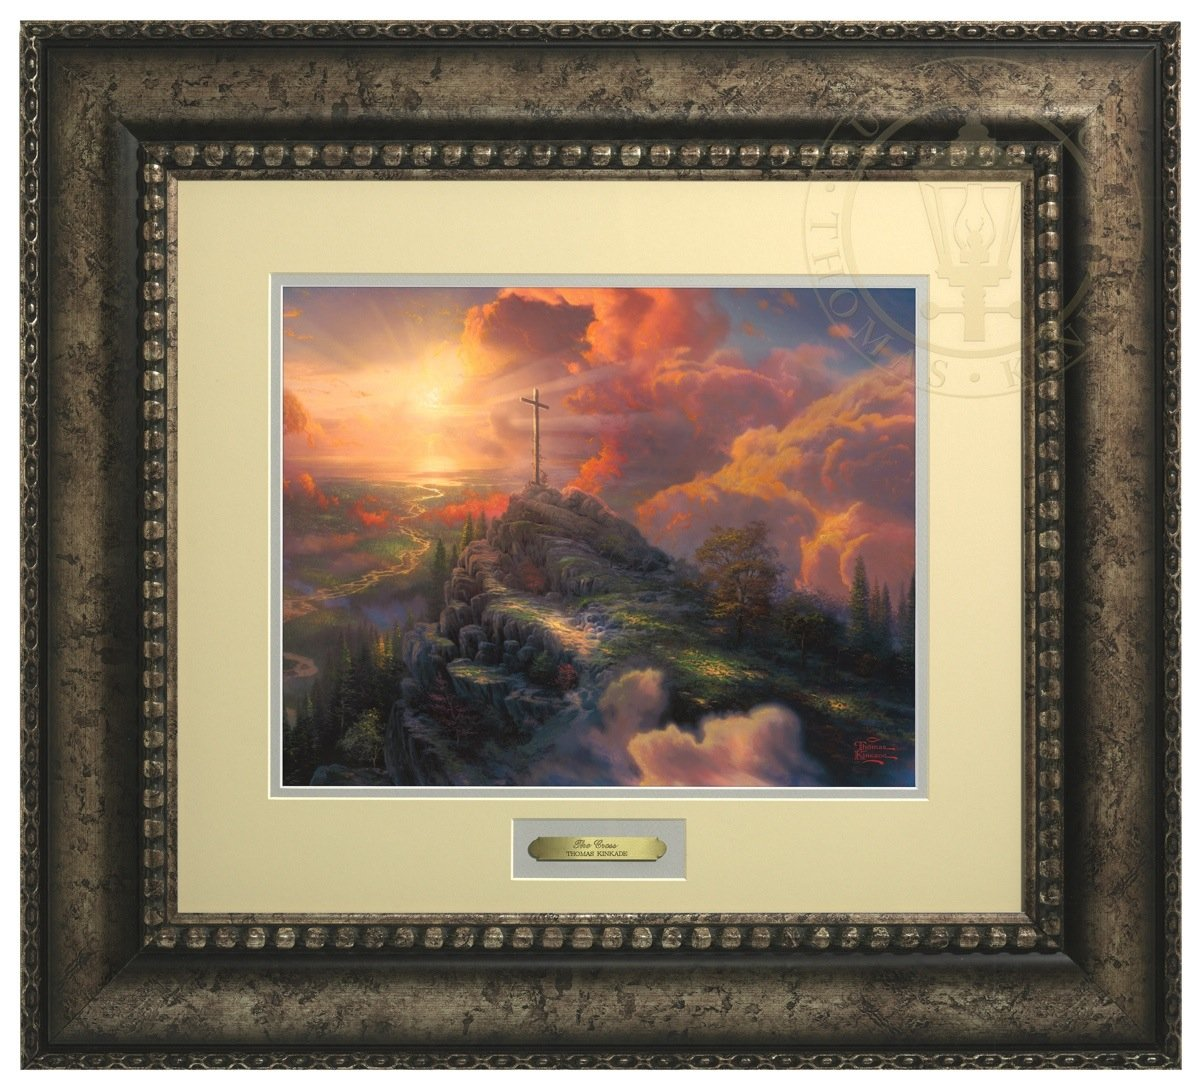 The Cross - Thomas Kinkade Prestige Home Collection (Silver Frame) by Thomas Kinkade